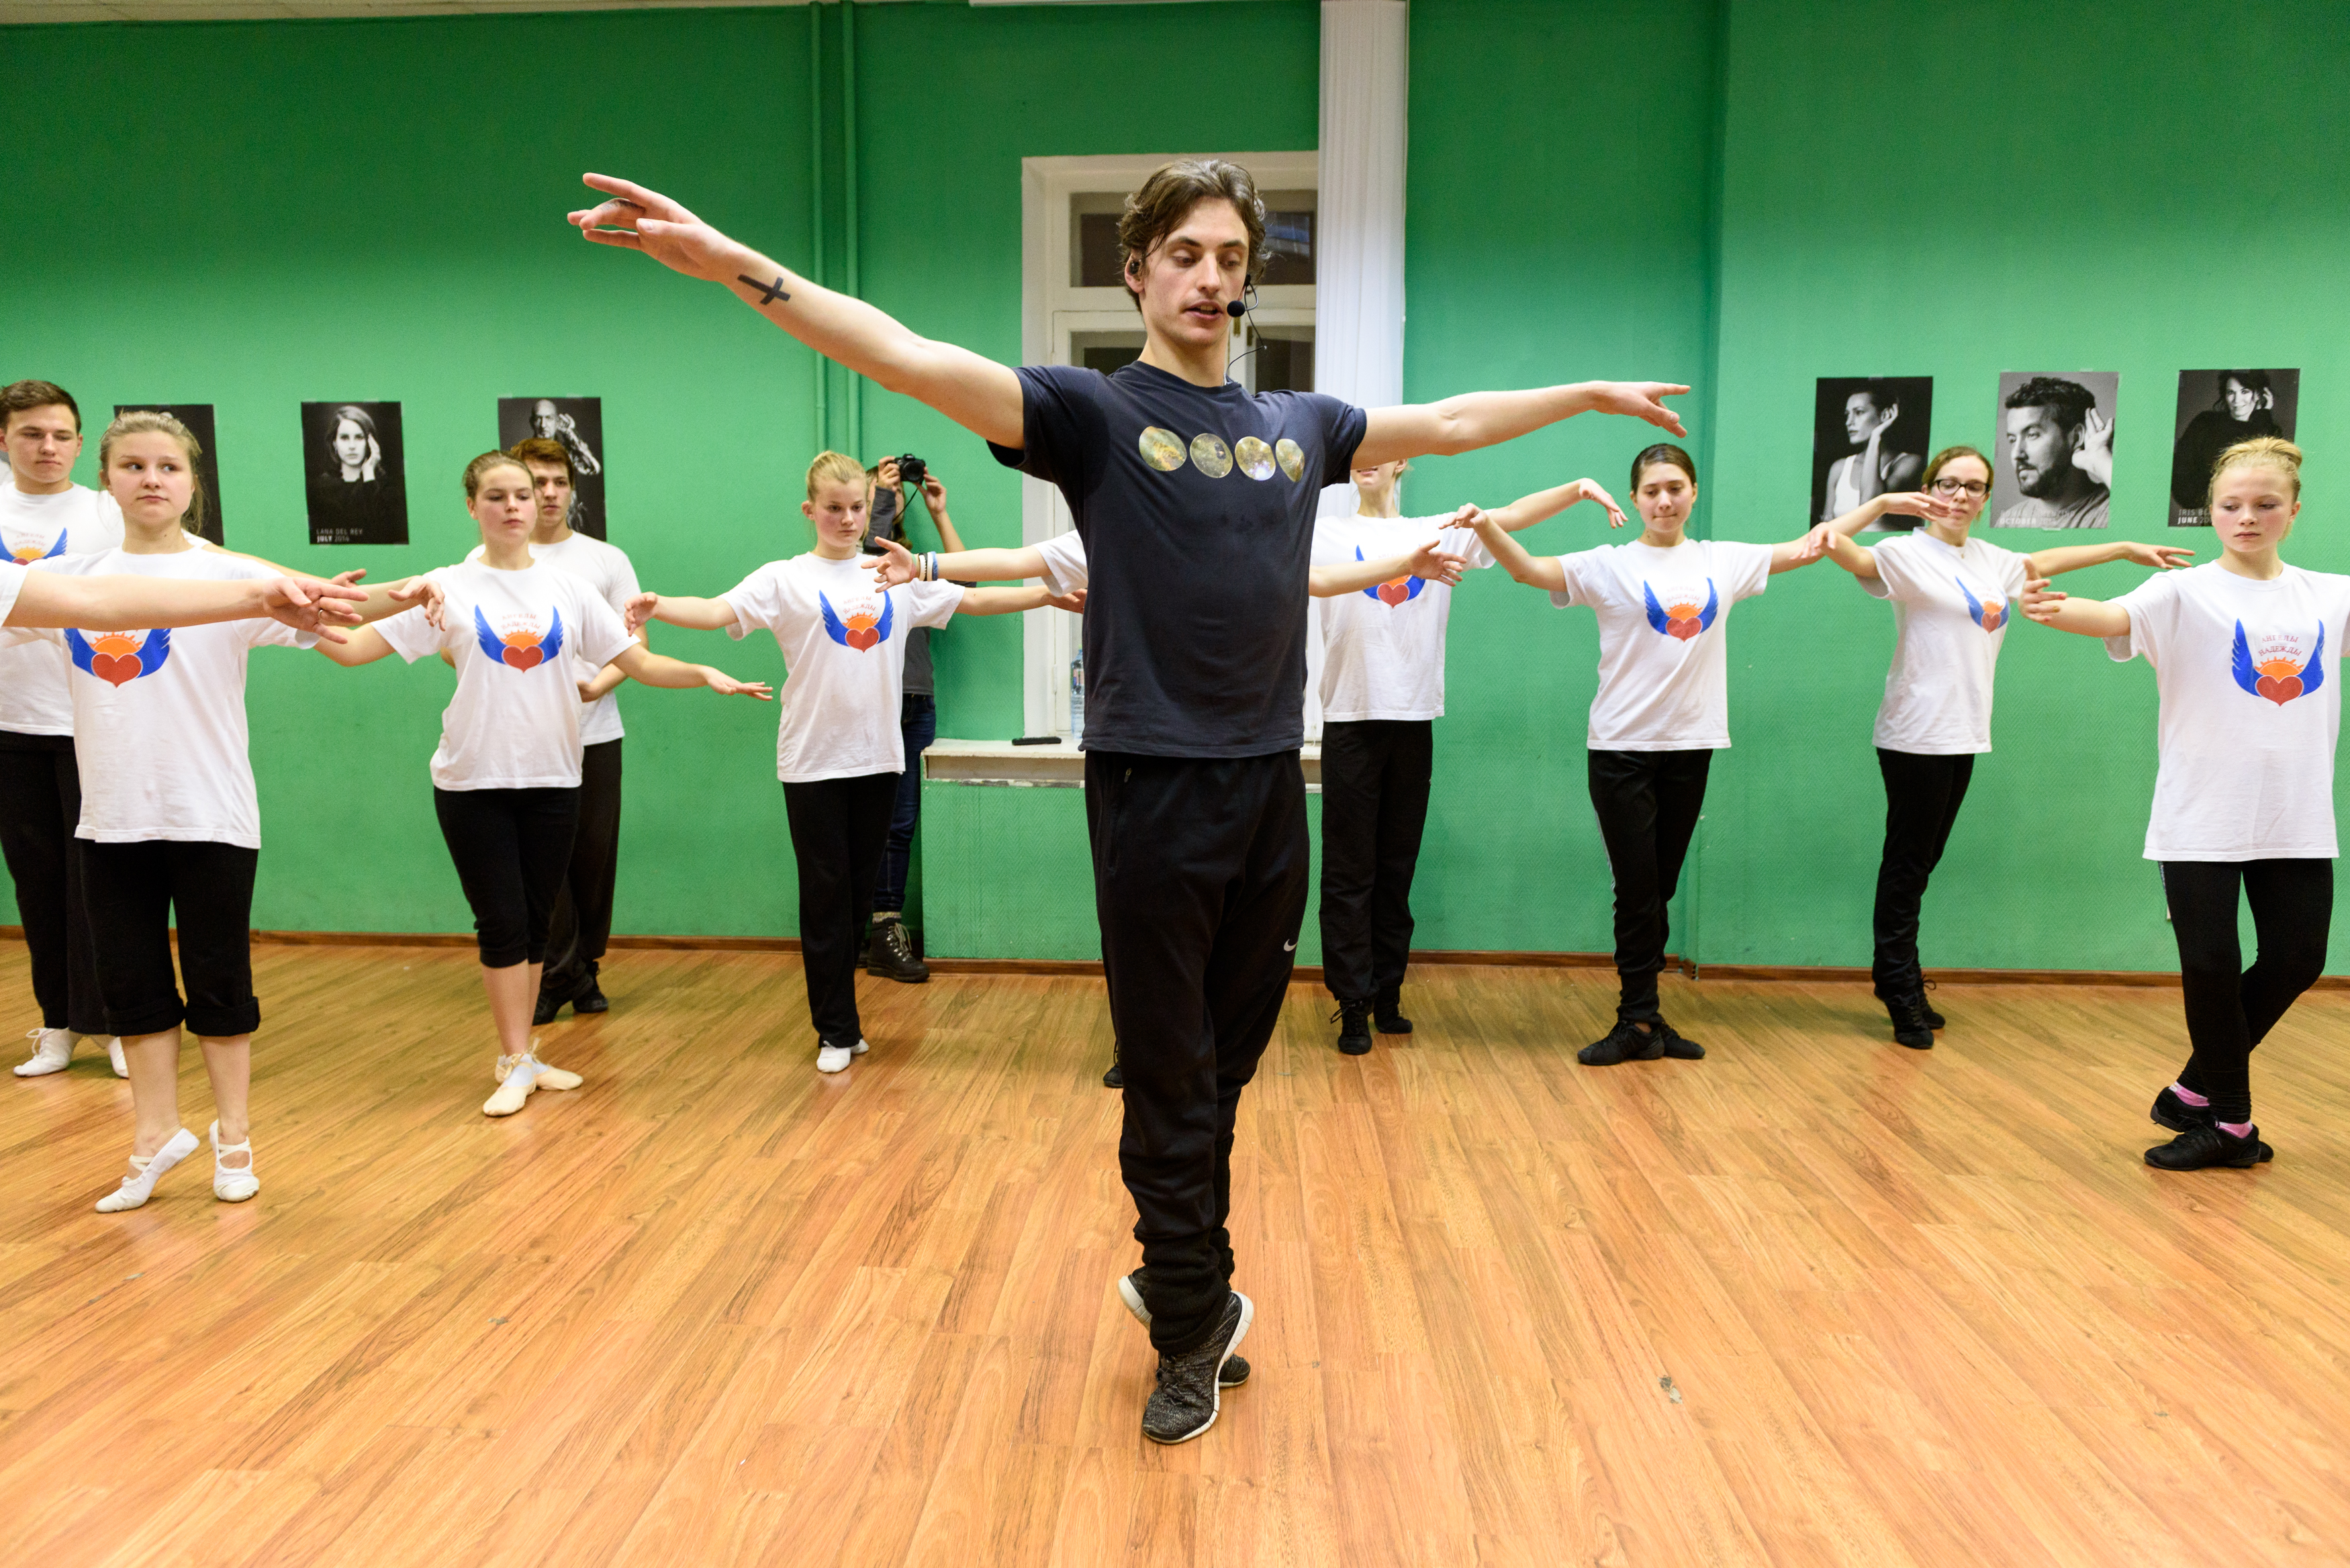 Sergei-Polunin-dances-with-teens-hearing-loss-Hear-the-World-Foundation-01